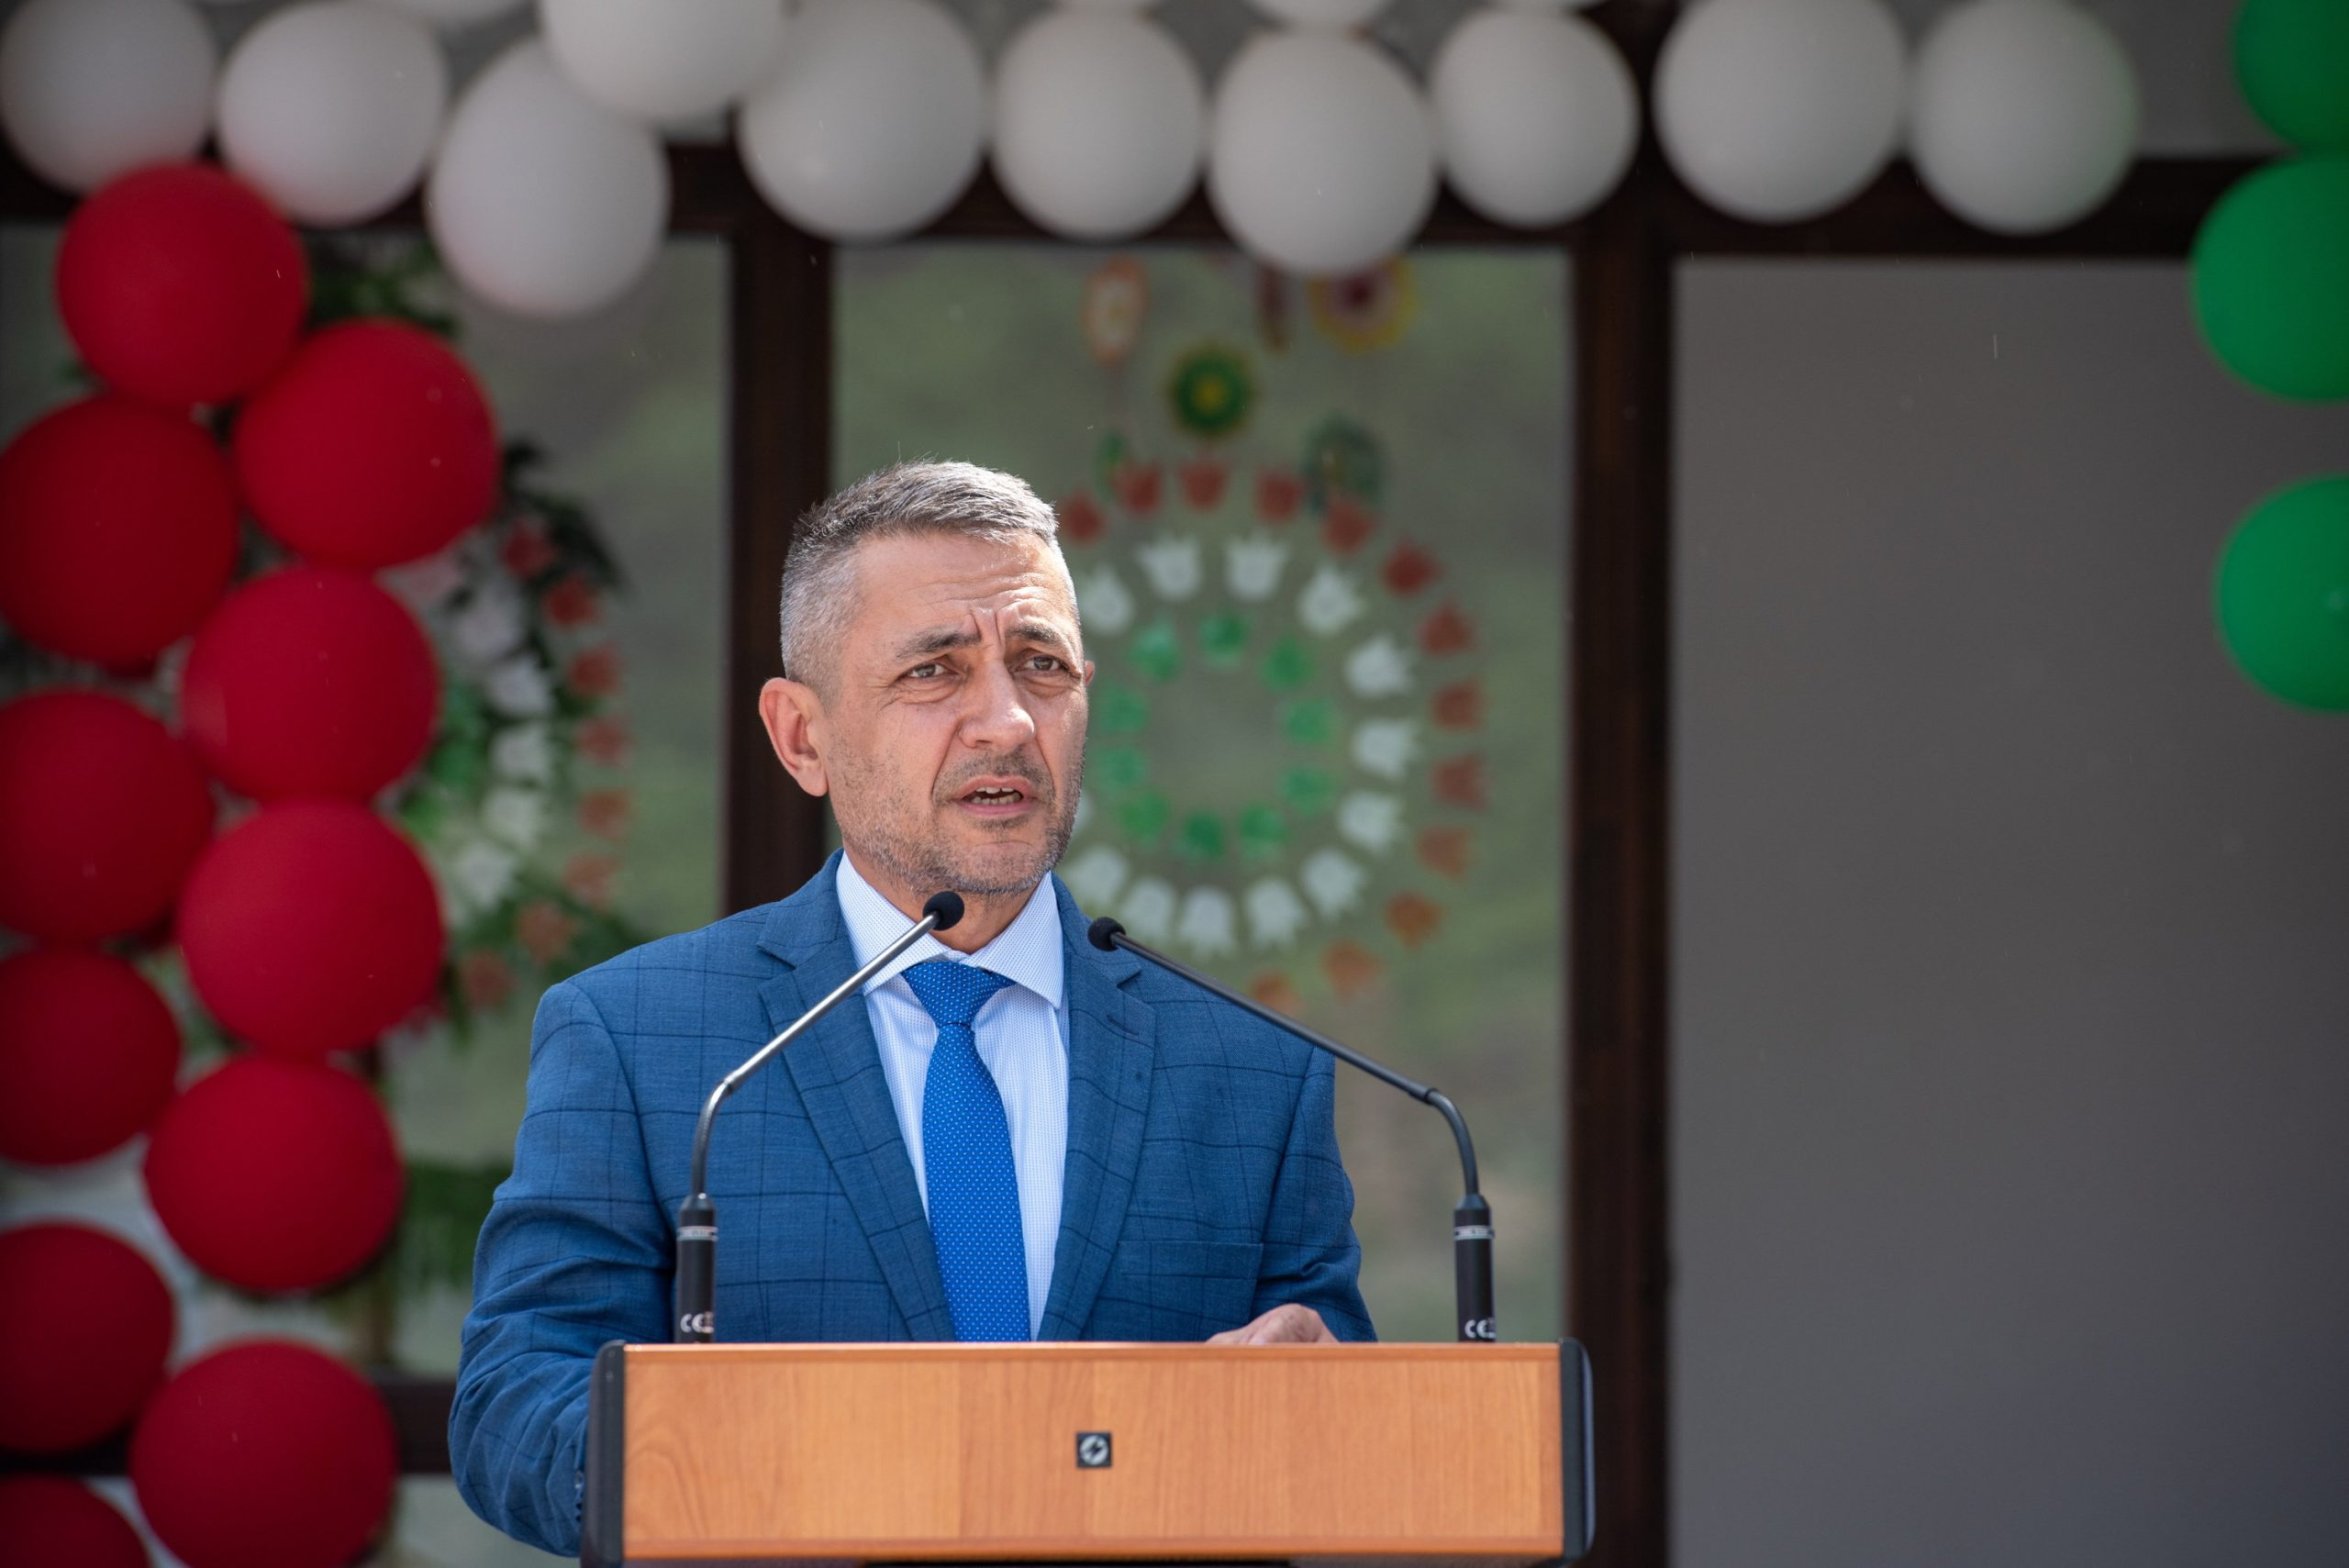 Gov't Programme Aids Almost 1,500 Ethnic Hungarian Organisations